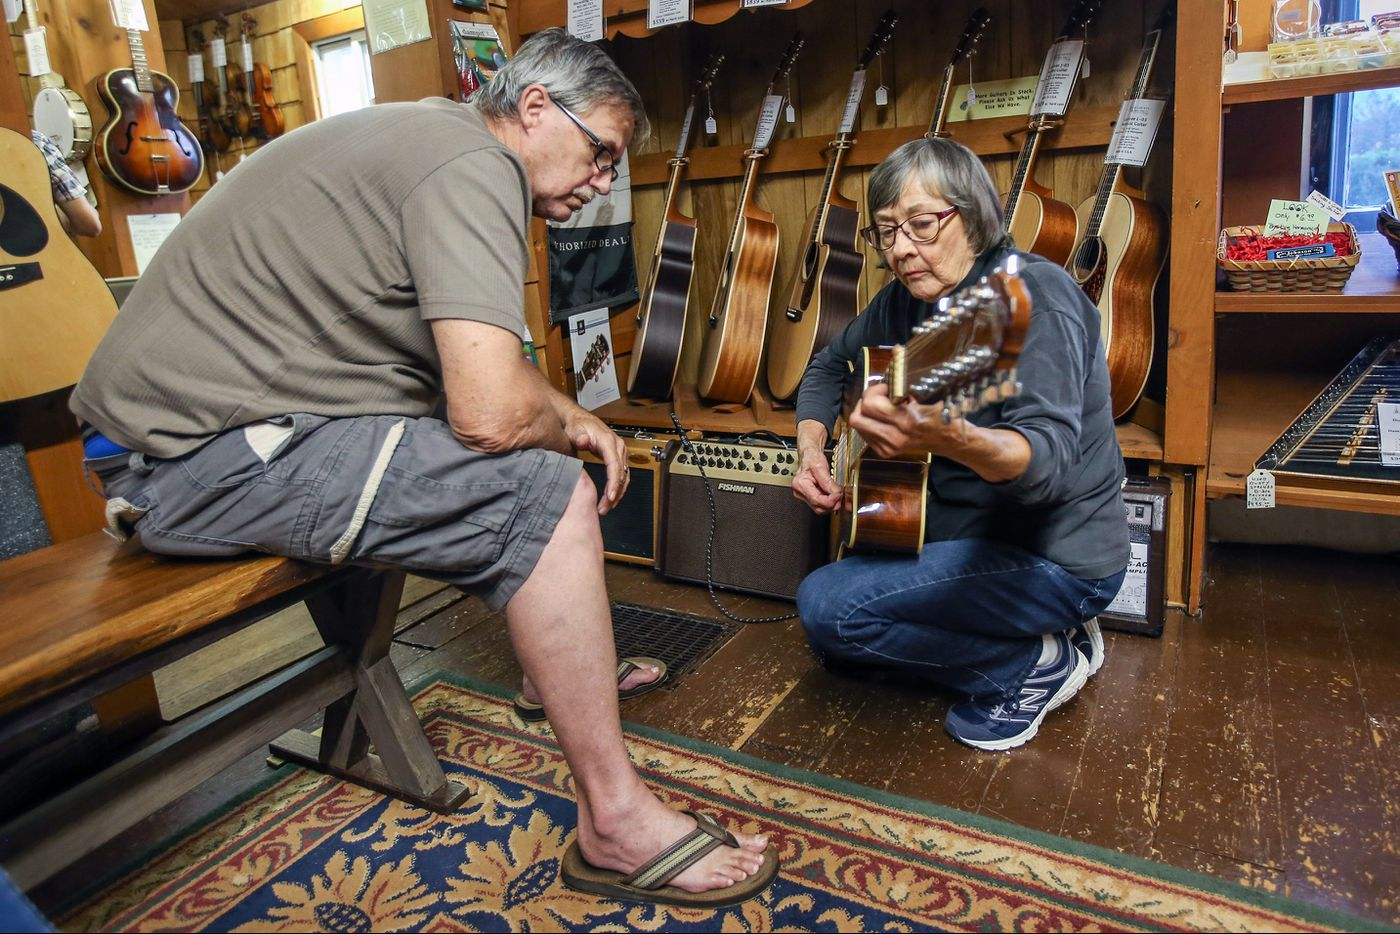 Decades after America's folk revival, specialty music stores keep afloat